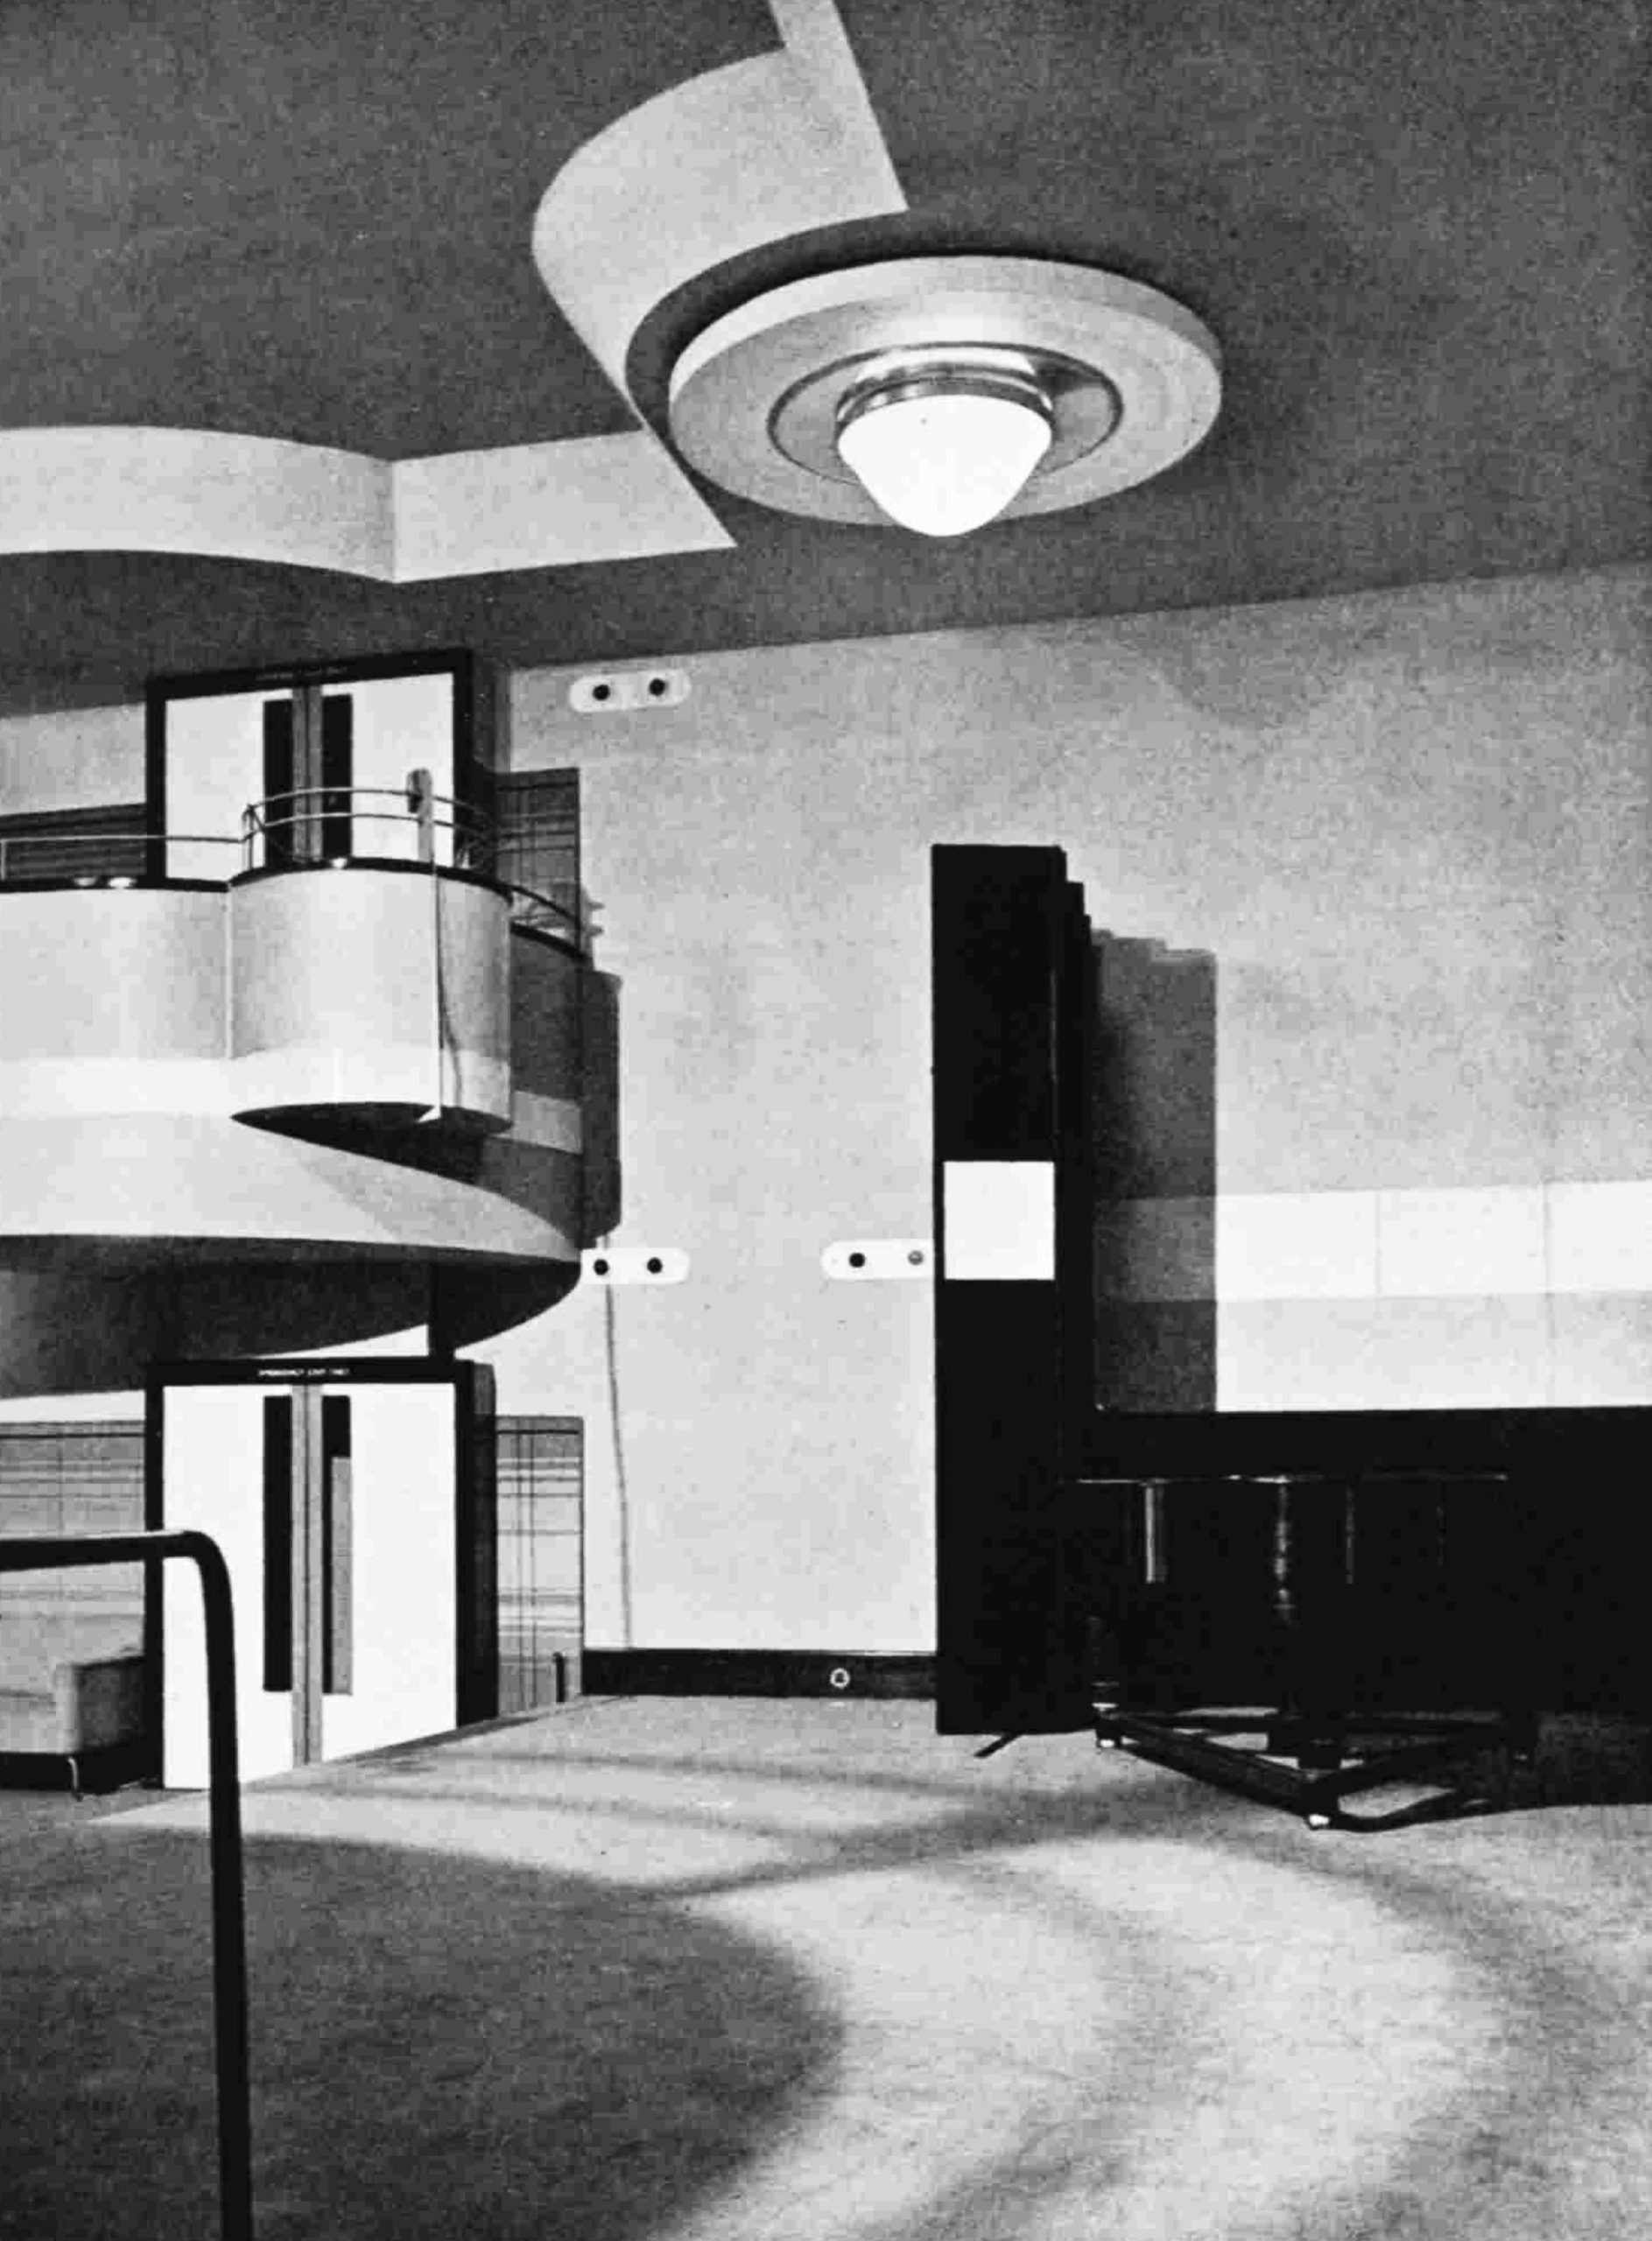 A view across a studio, with a large circular central light and a curved balcony